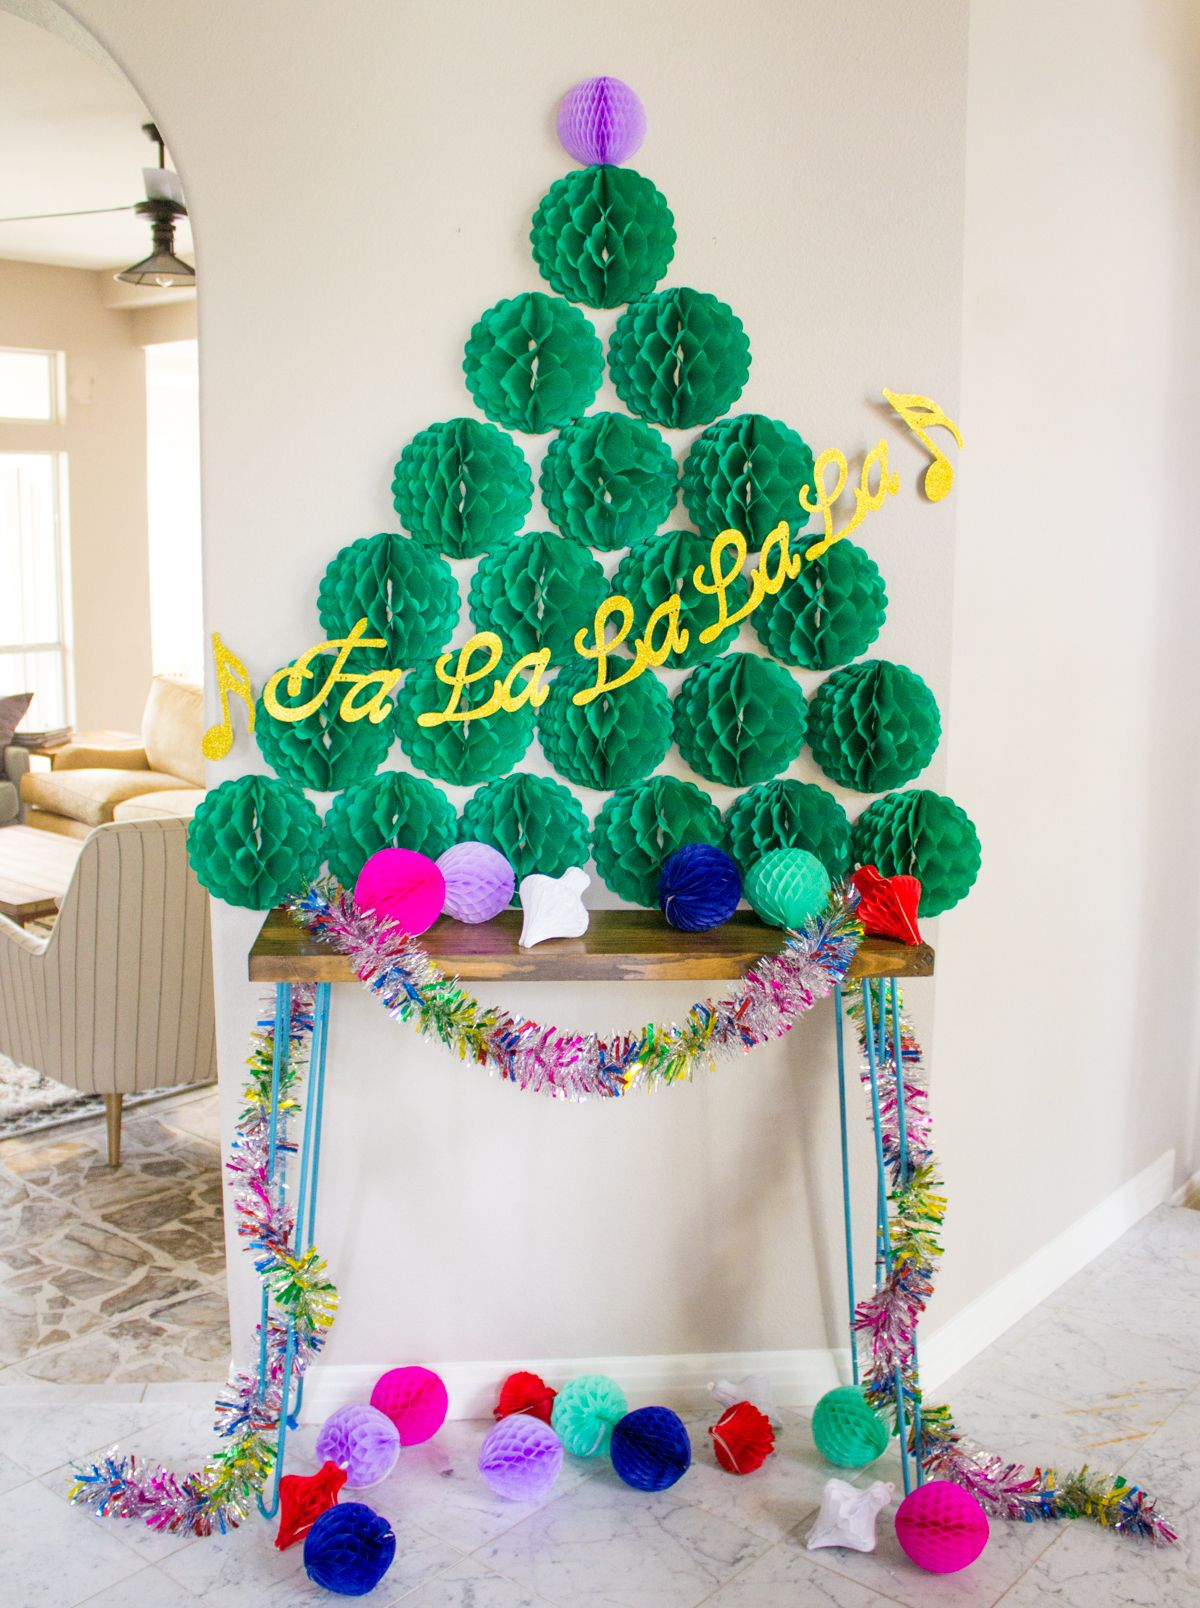 Make A Christmas Tree For Your Wall Out Of Honeycomb Balls